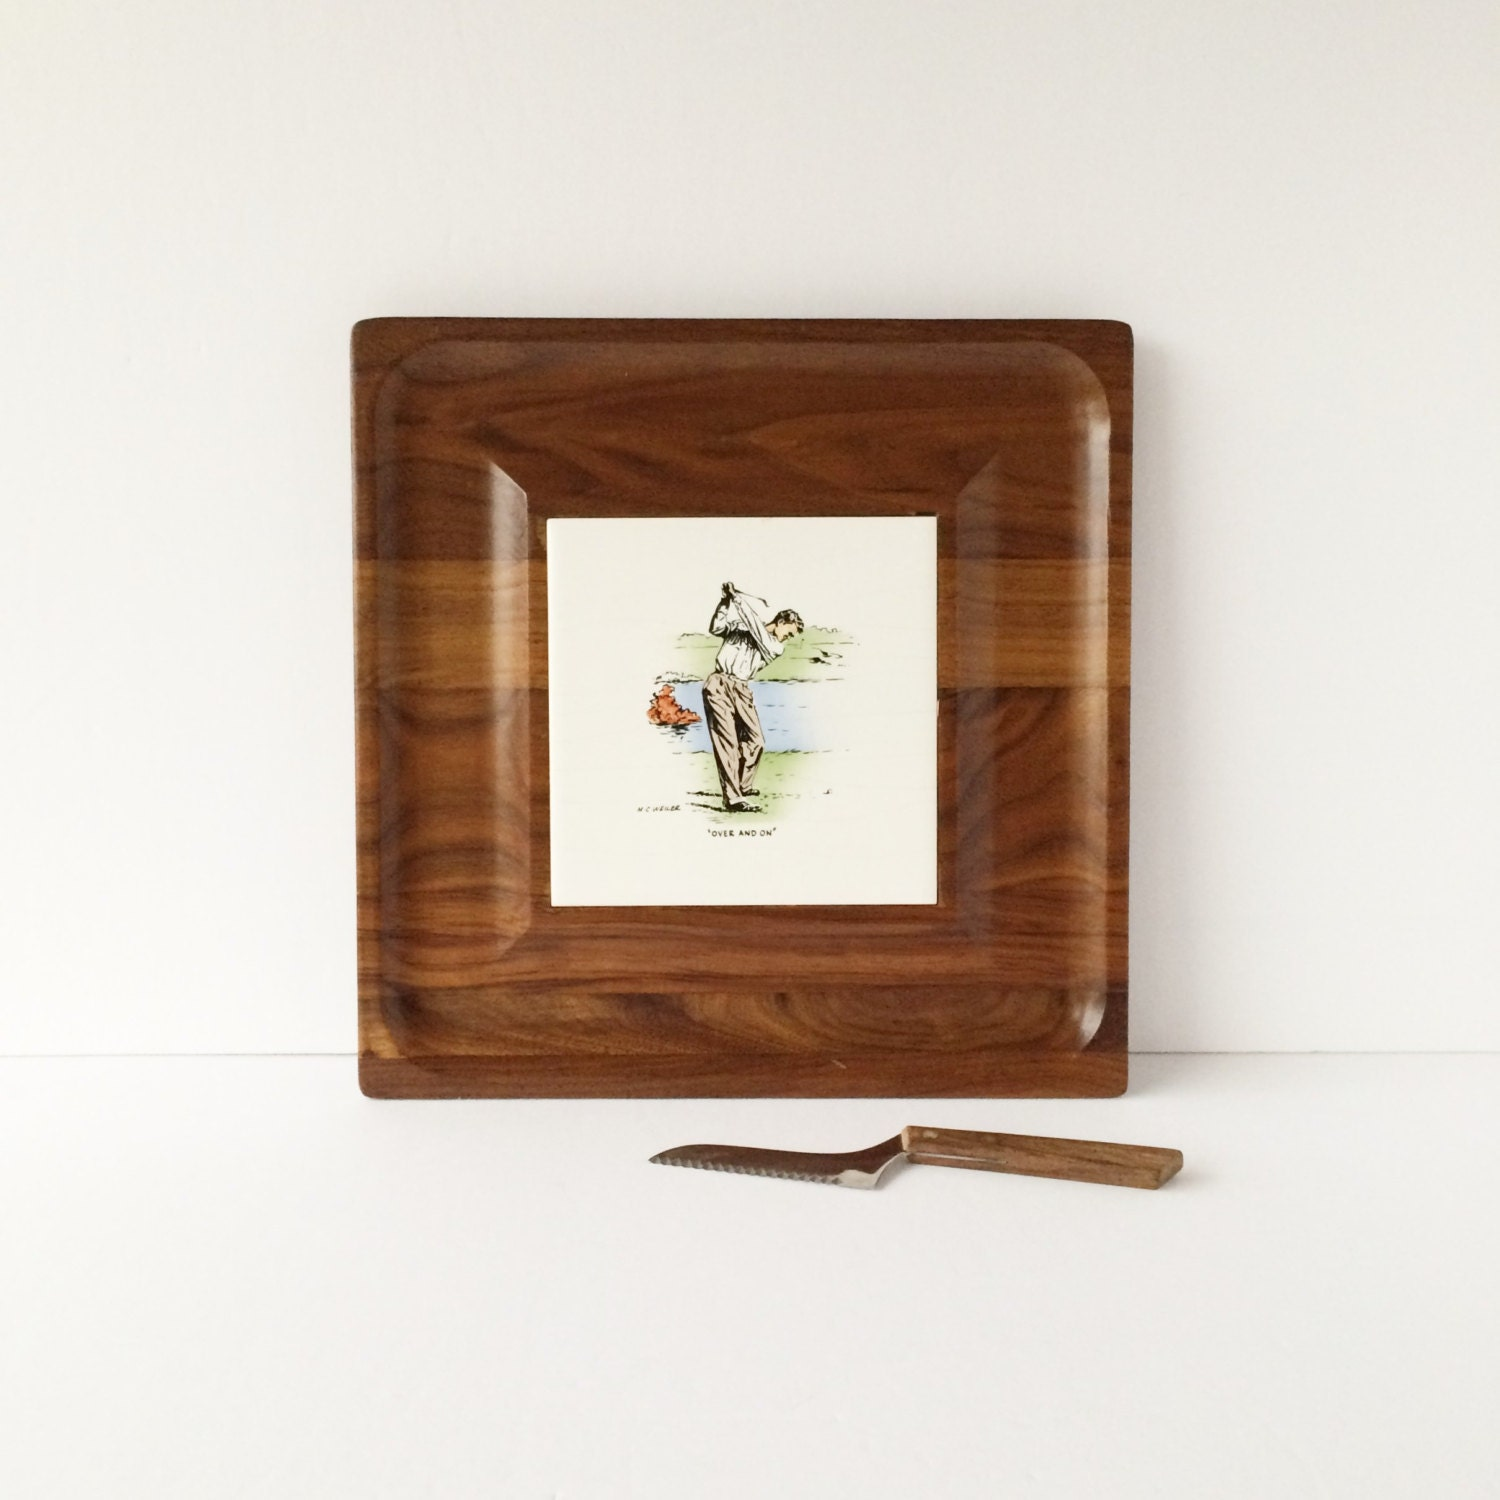 Vintage Golf Motif Cheese Cutting Board Appetizer Serving Tray